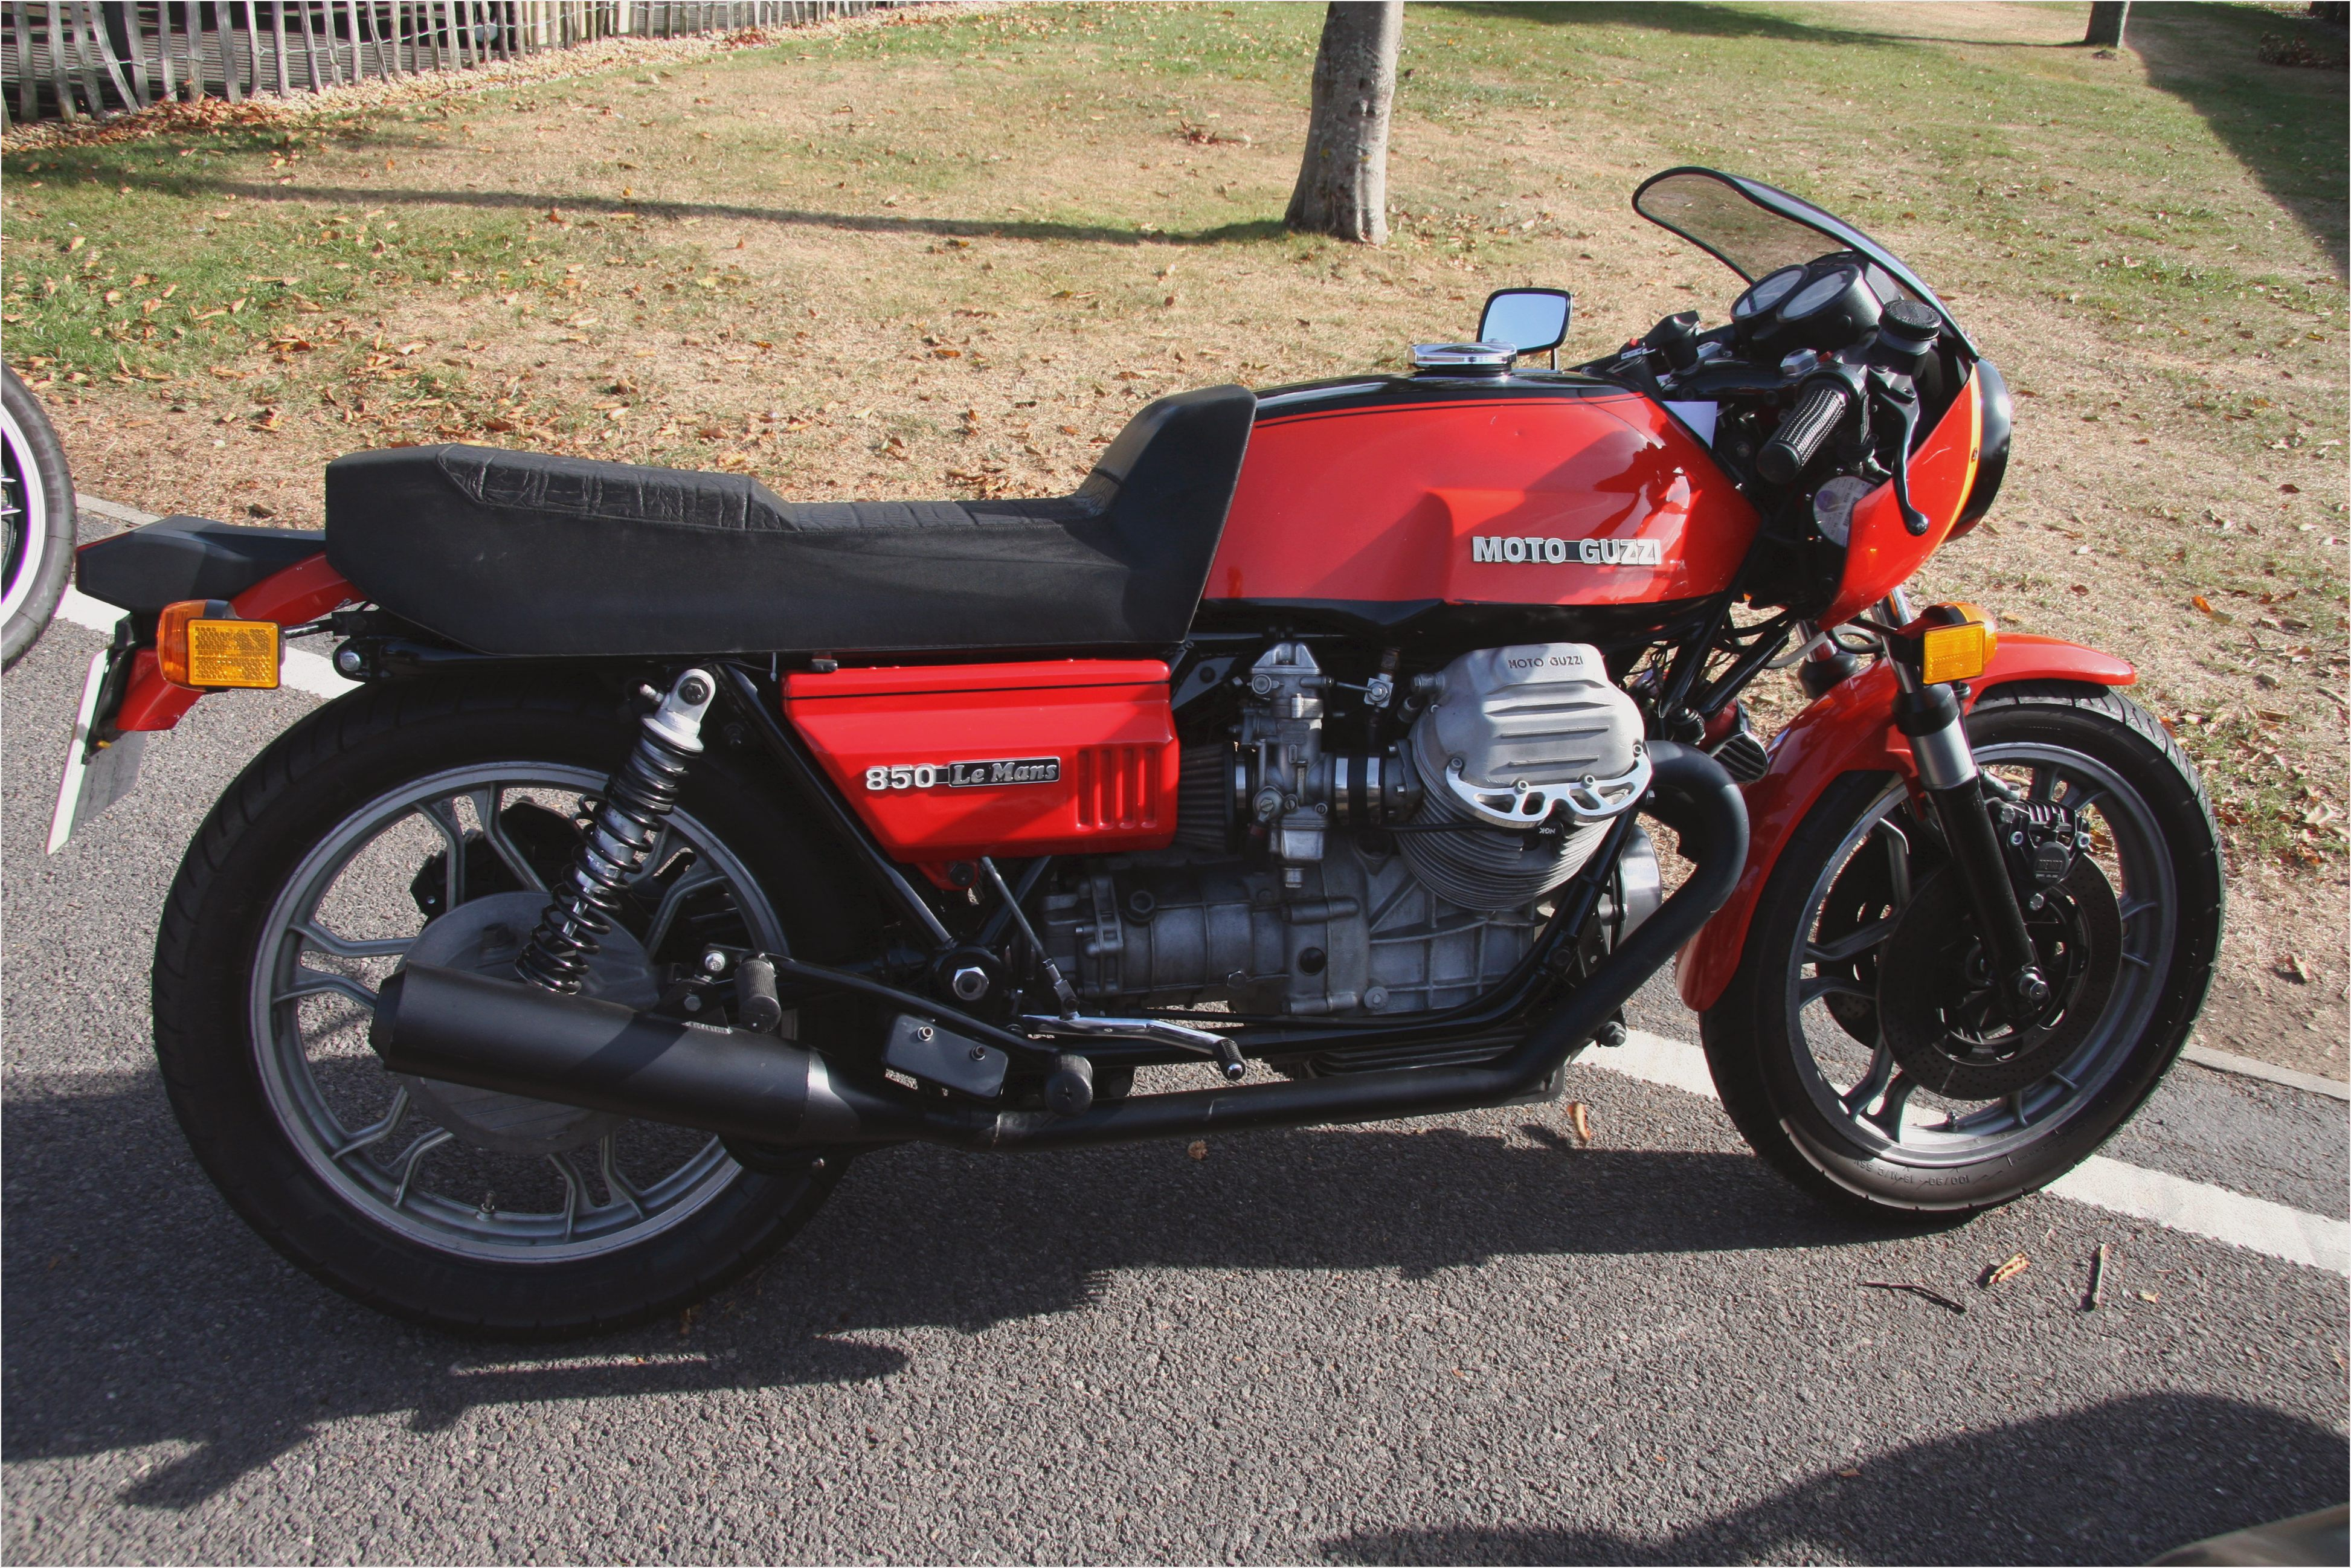 1992 moto guzzi le mans 1000 pics specs and information. Black Bedroom Furniture Sets. Home Design Ideas